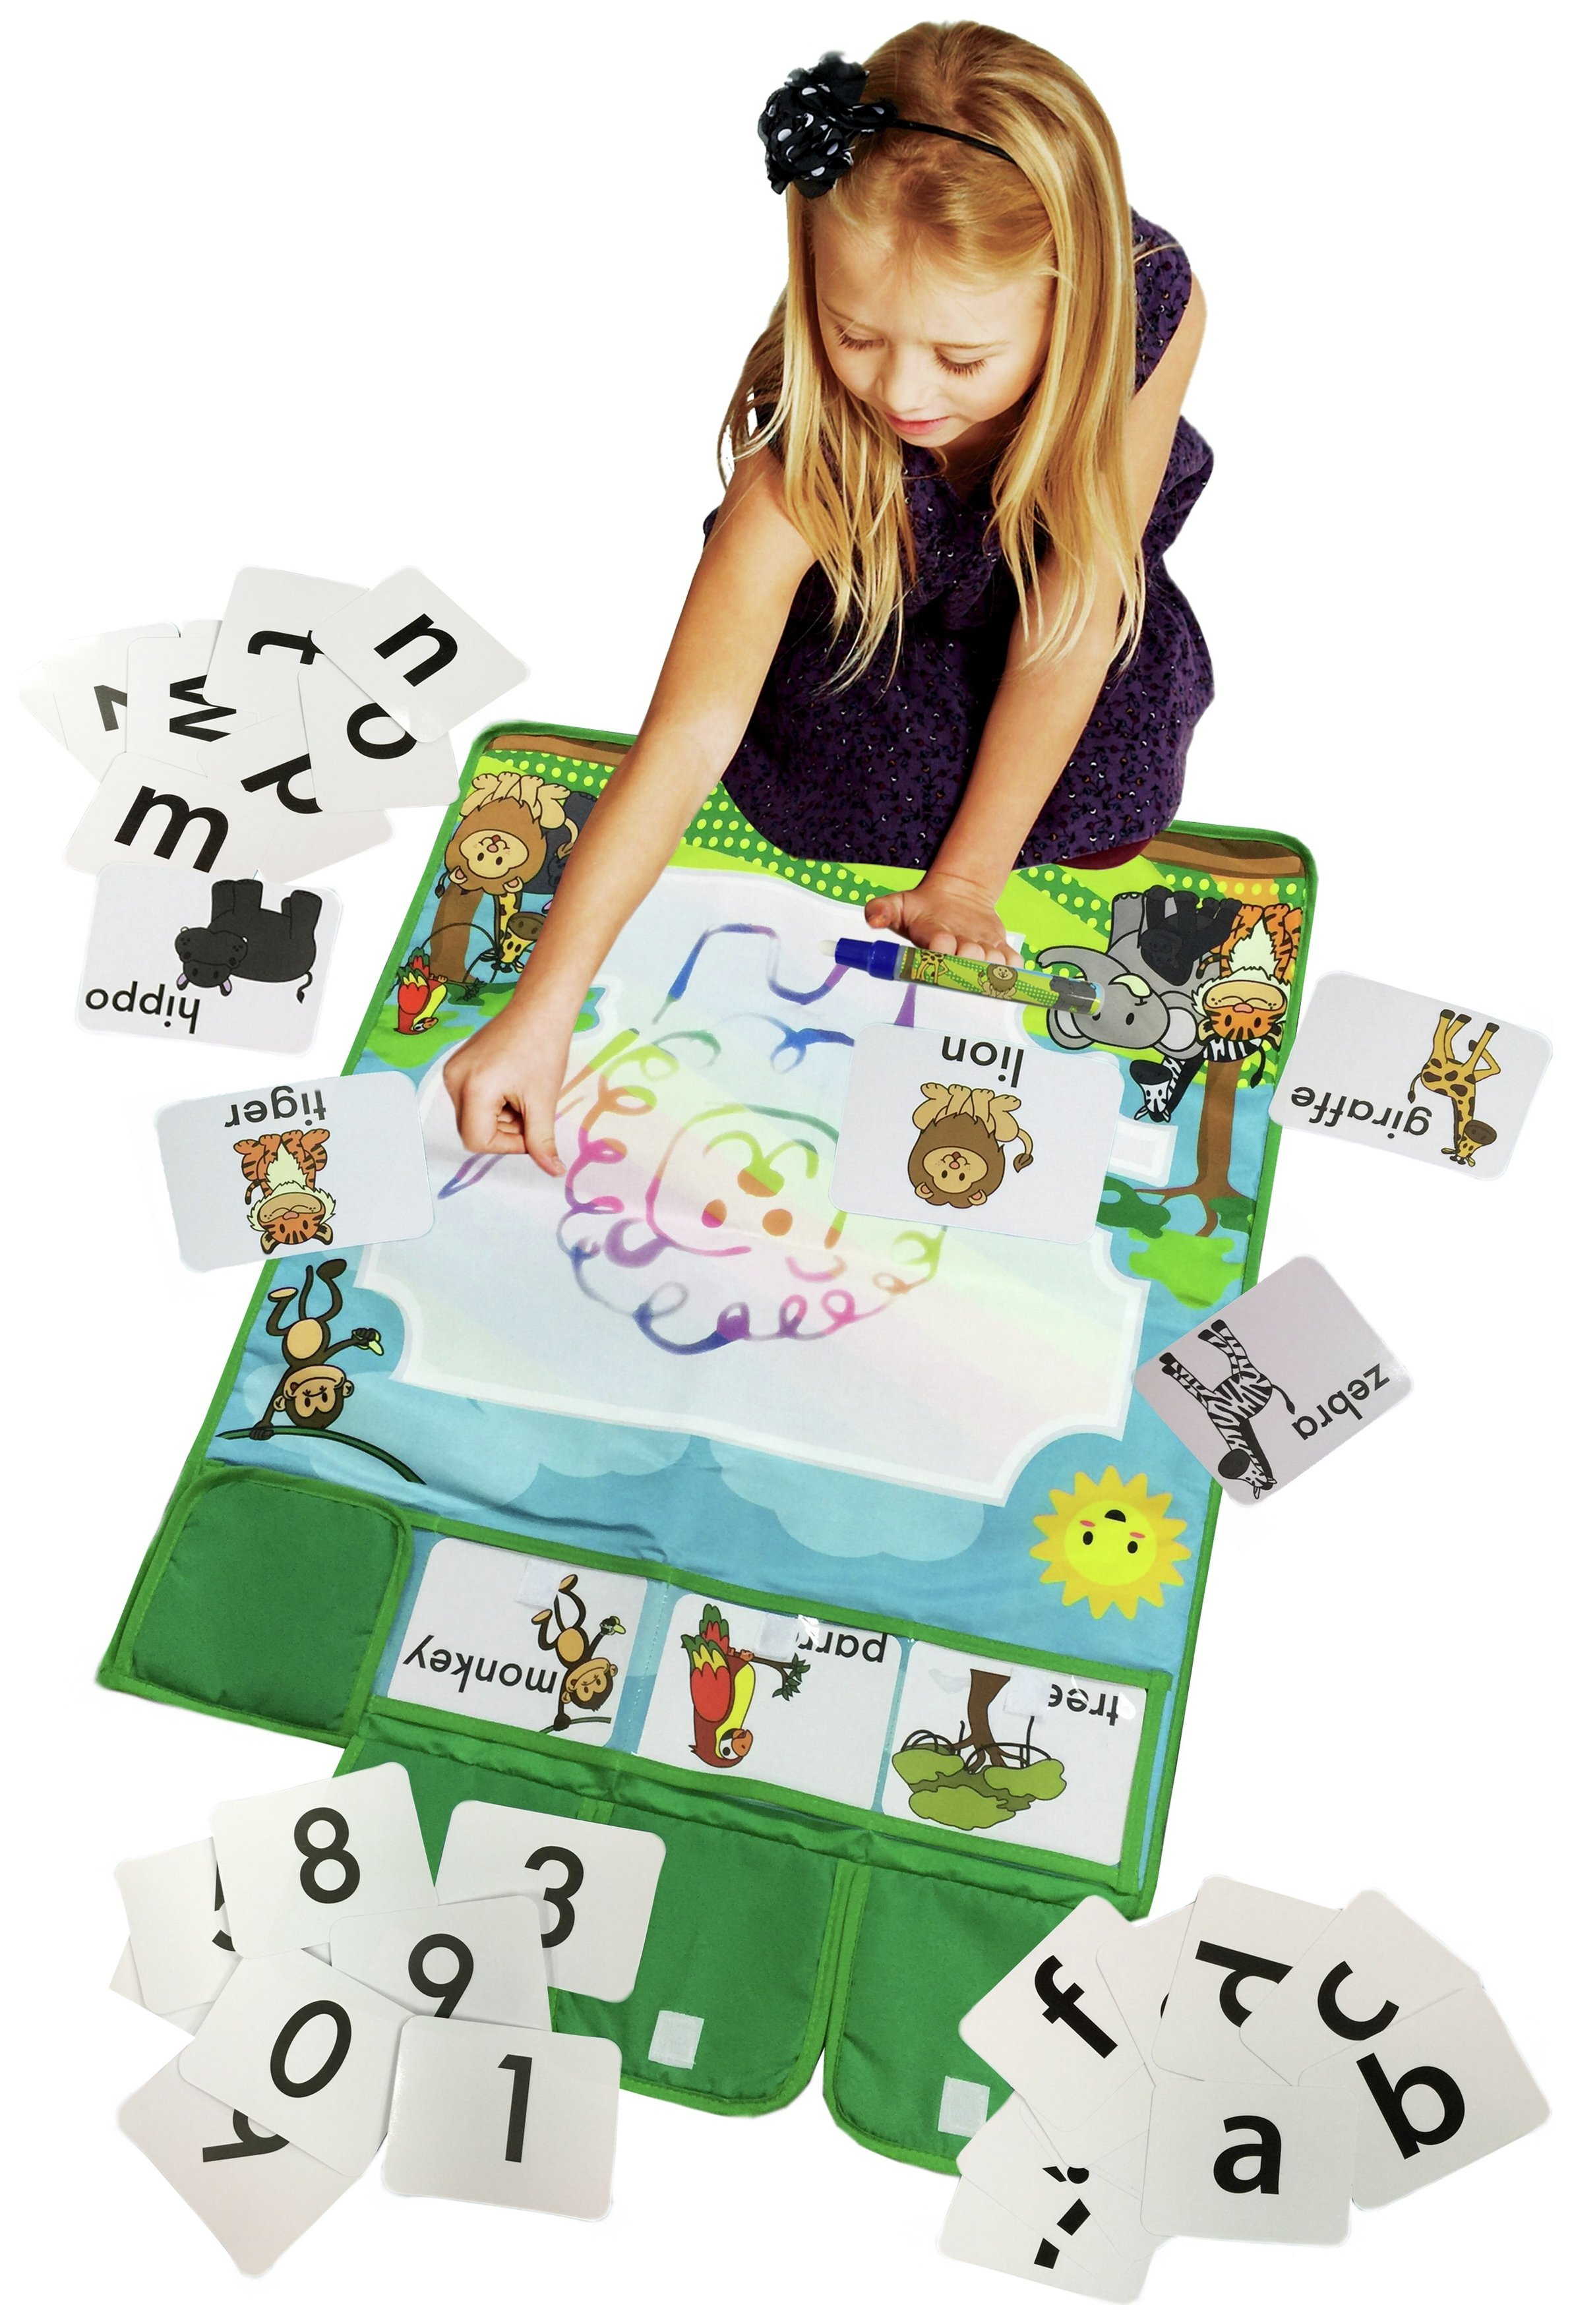 chad valley playsmart aqua mat with flashcards 7248669. Black Bedroom Furniture Sets. Home Design Ideas